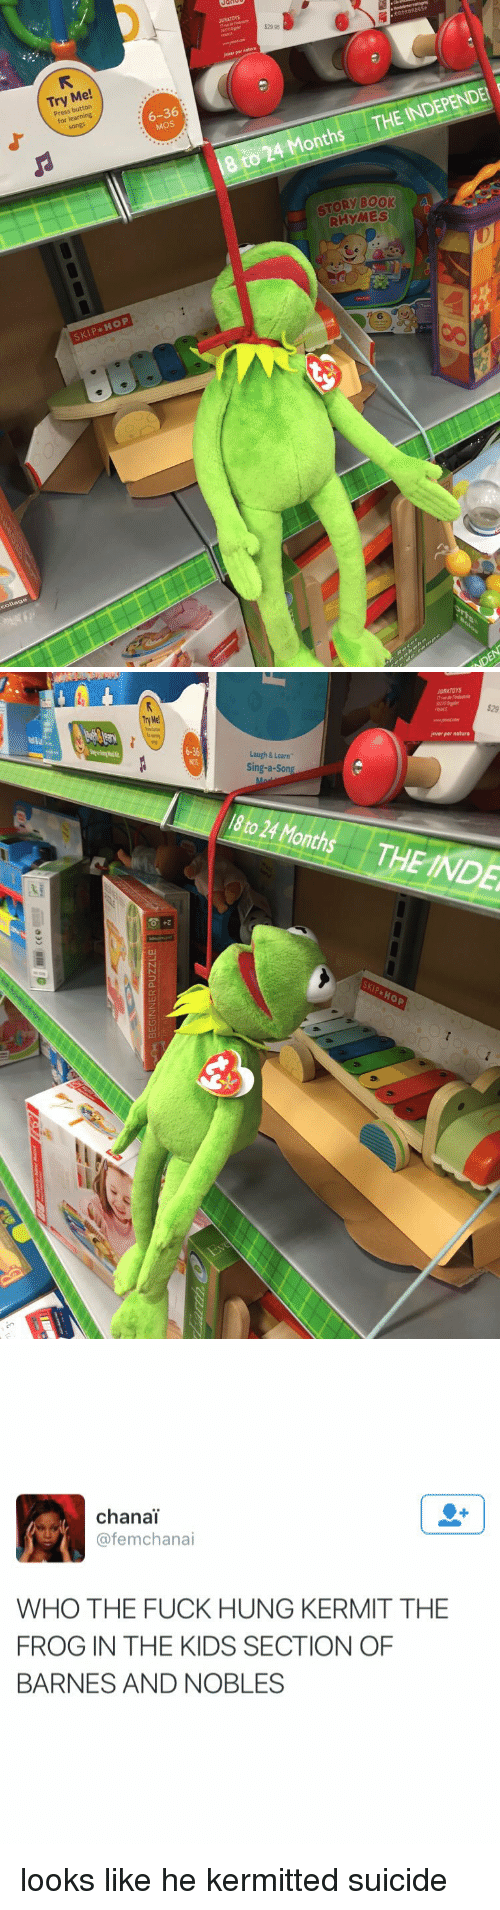 barnes and noble: Try Me  Press button  6-36  for HOP  SKIP  $2995  INDEPENDEN i  to Months THE 18 24 STORY BOOK  RHYMES   Laugh & Learn  Sing-a-Son  18 24 Mo  to Hop  JURATOrs  hover par nature  $29   chana  (a femchanai  WHO THE FUCK HUNG KERMIT THE  FROG IN THE KIDS SECTION OF  BARNES AND NOBLES looks like he kermitted suicide